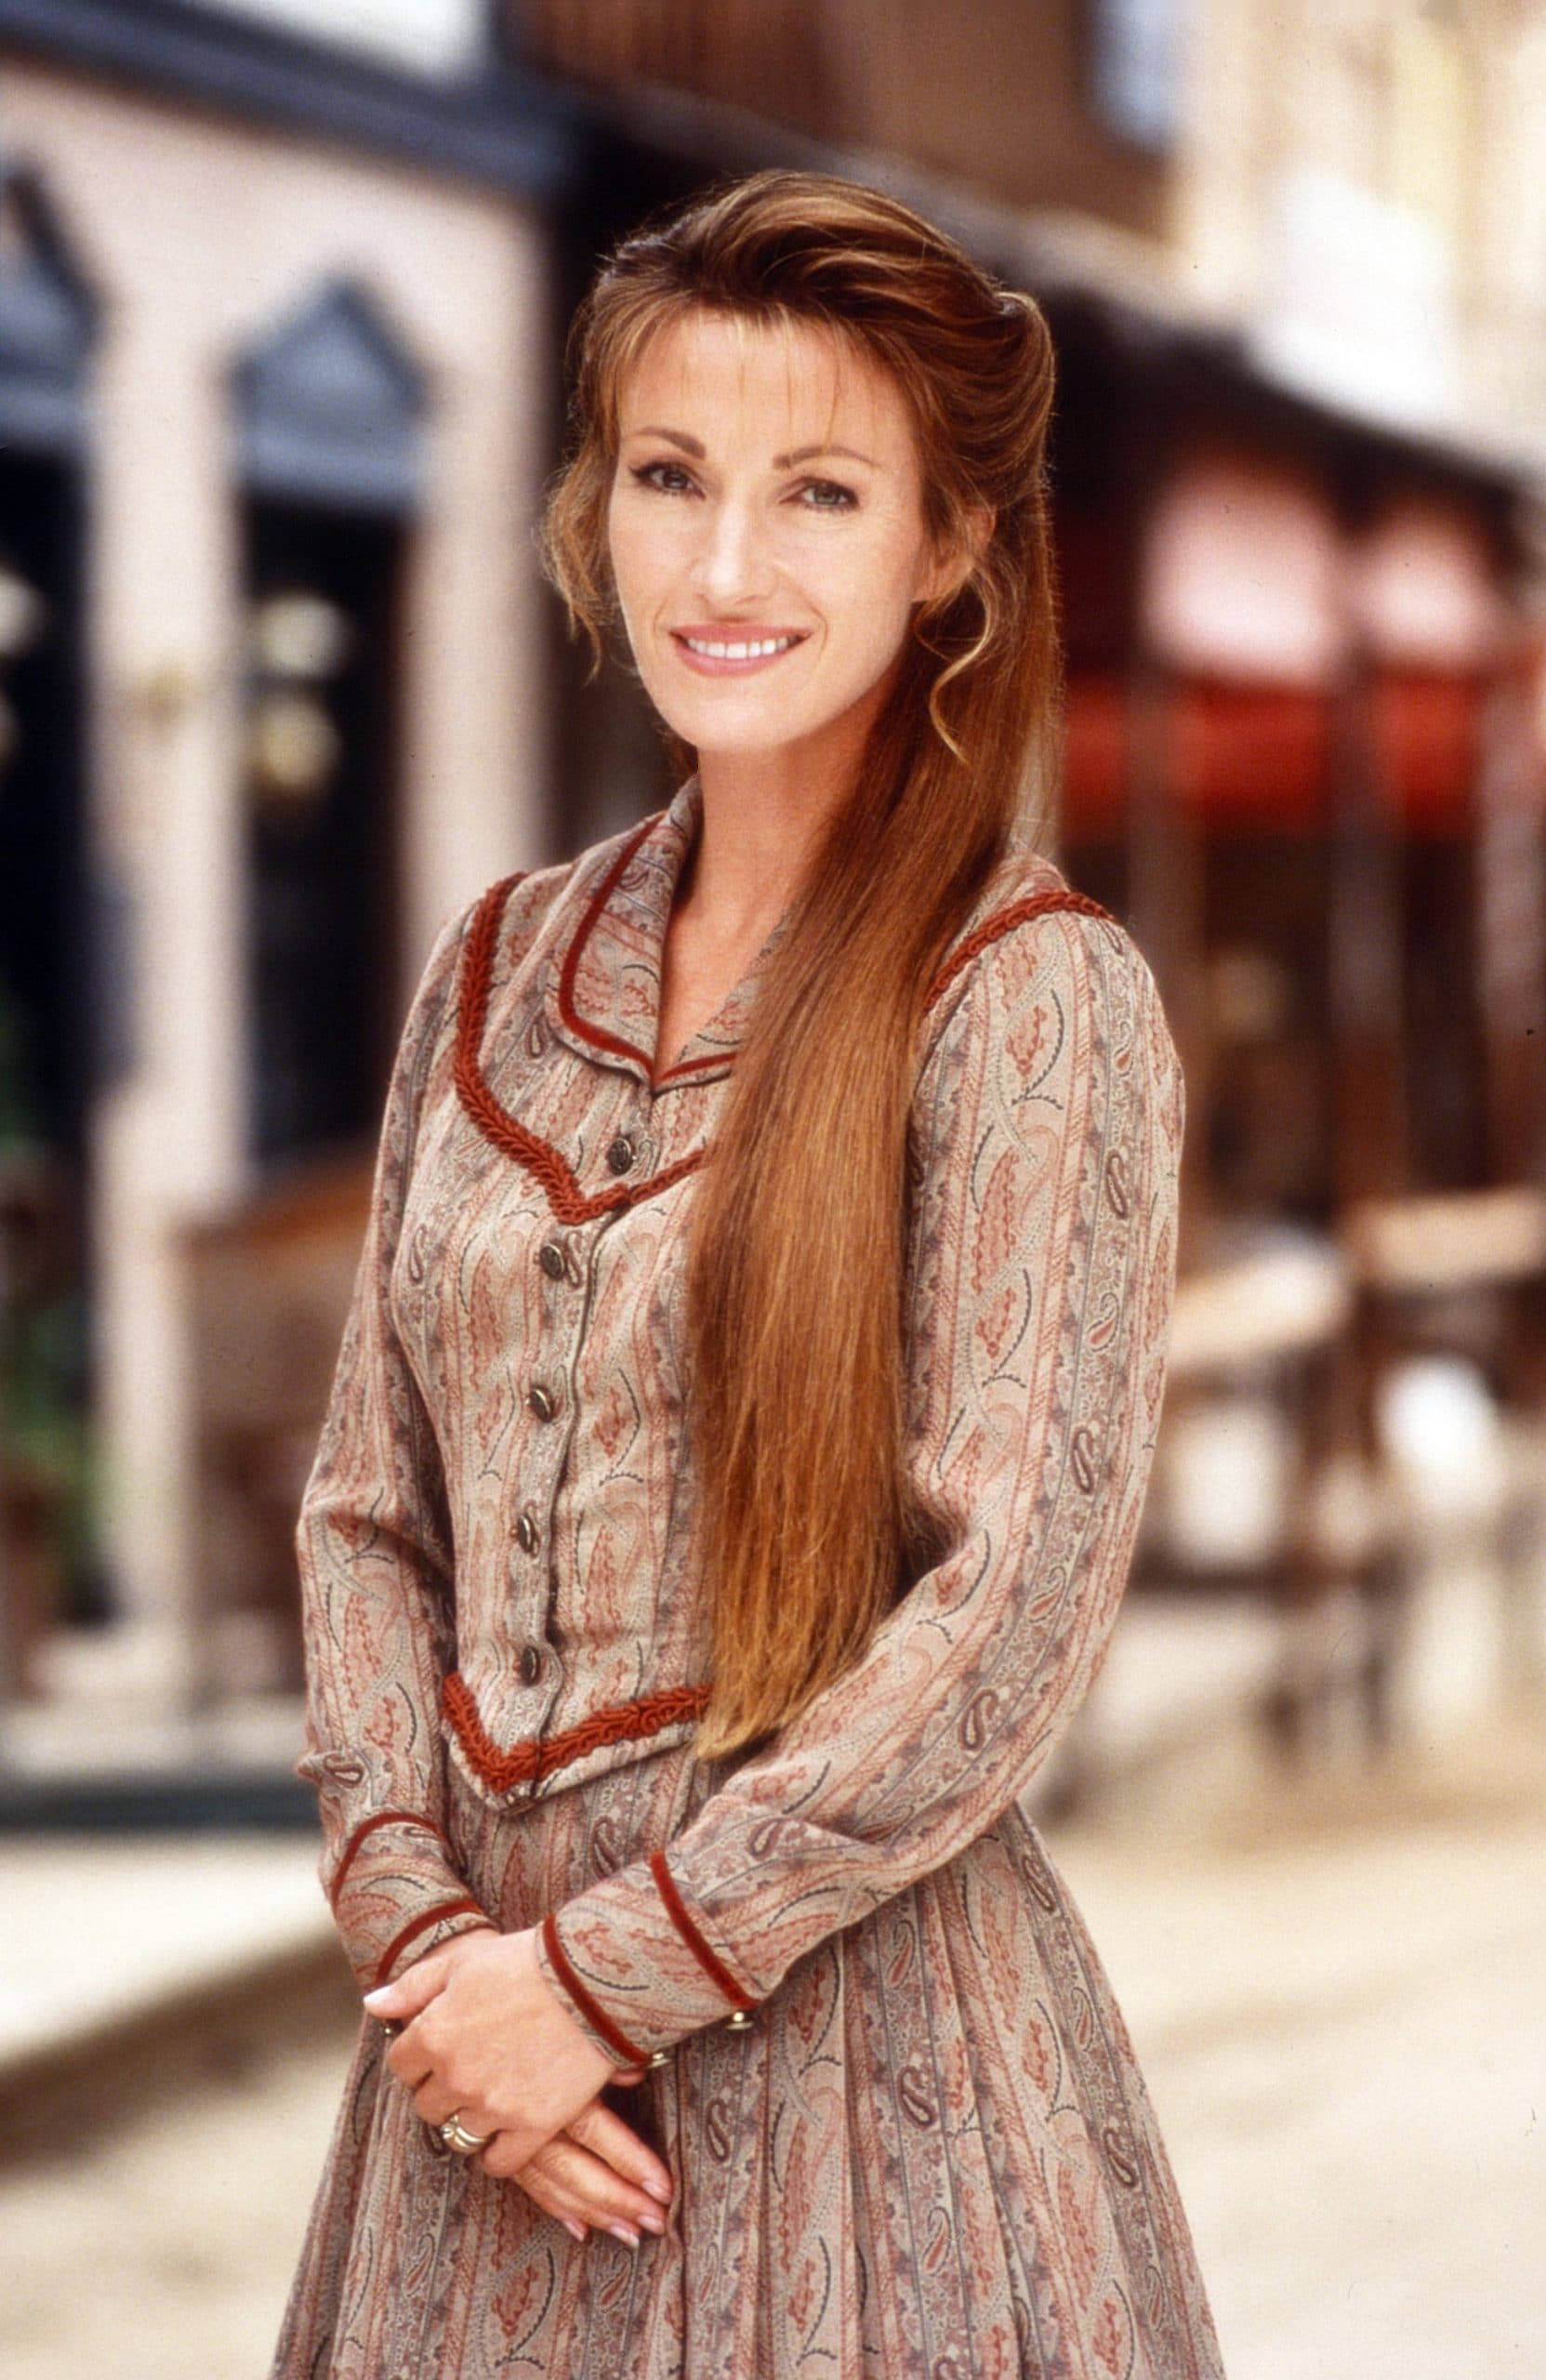 DR. QUINN, MEDICINE WOMAN, Jane Seymour, with one of the Calabrese triplets, 1997, 1993-1998